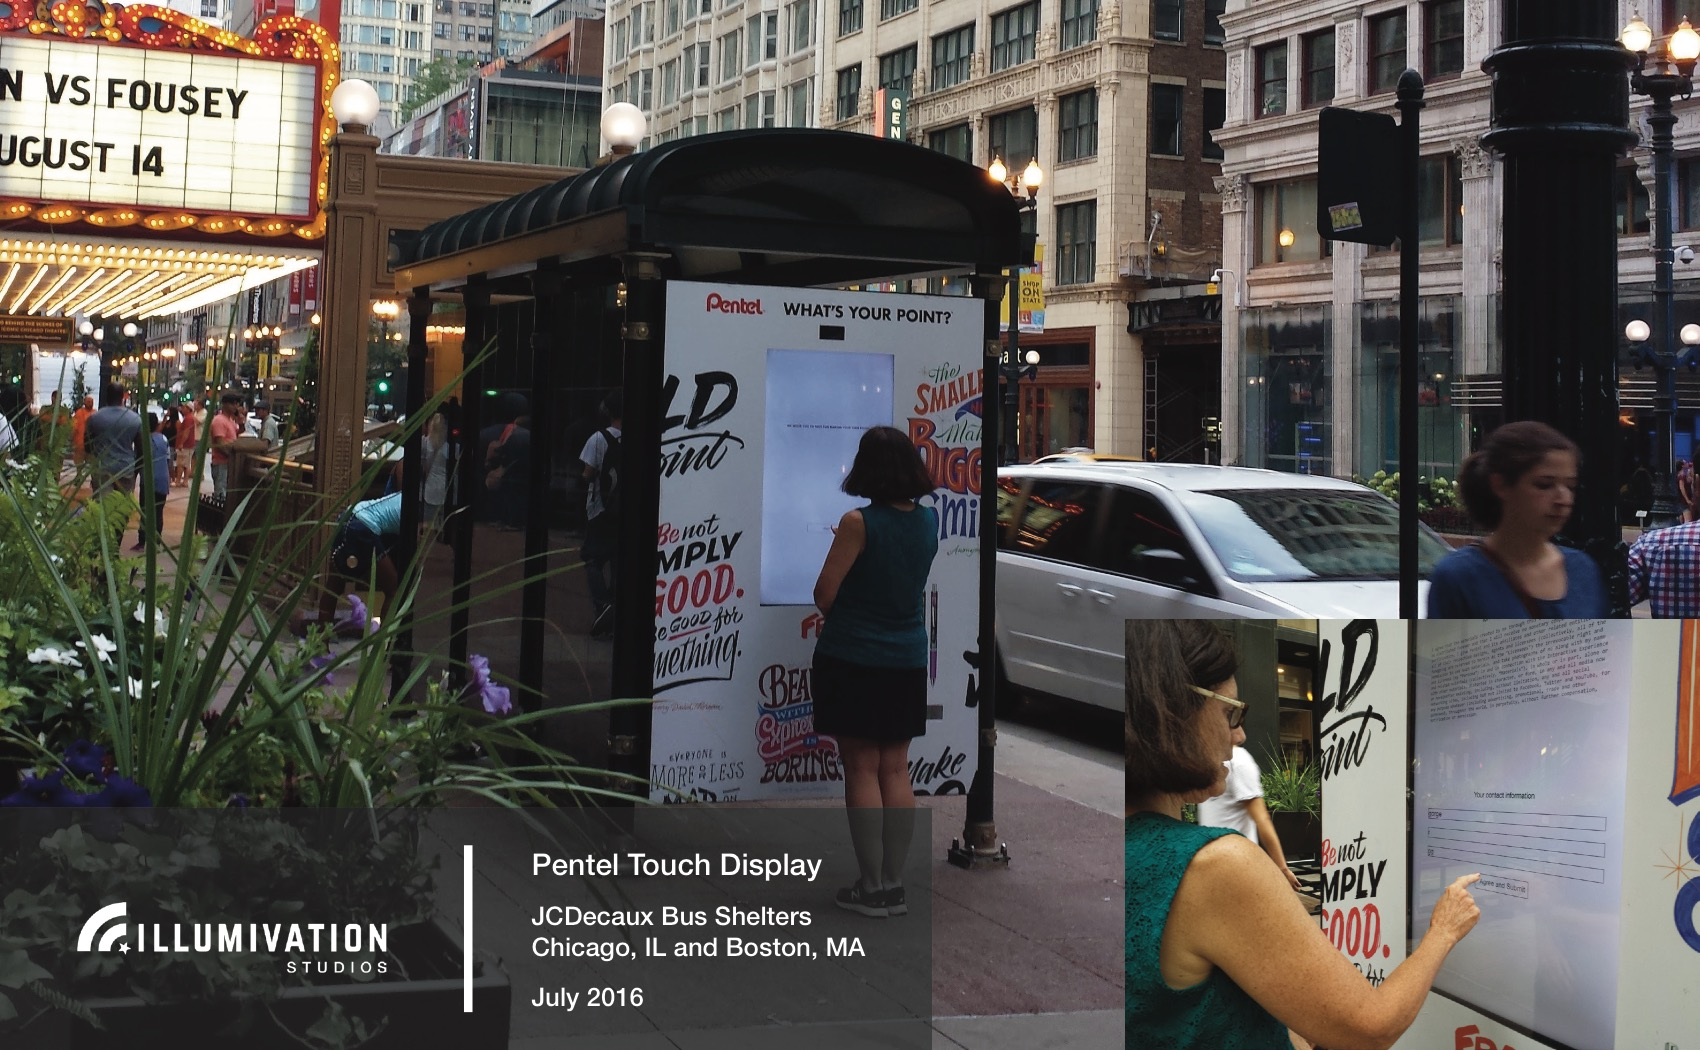 Illumivation Portfolio 2017 Pentel touchscreen Innovate JCDecaux Shelters Chicago Creative Outdoor Advertising OOH Out of Home Marketing.jpeg